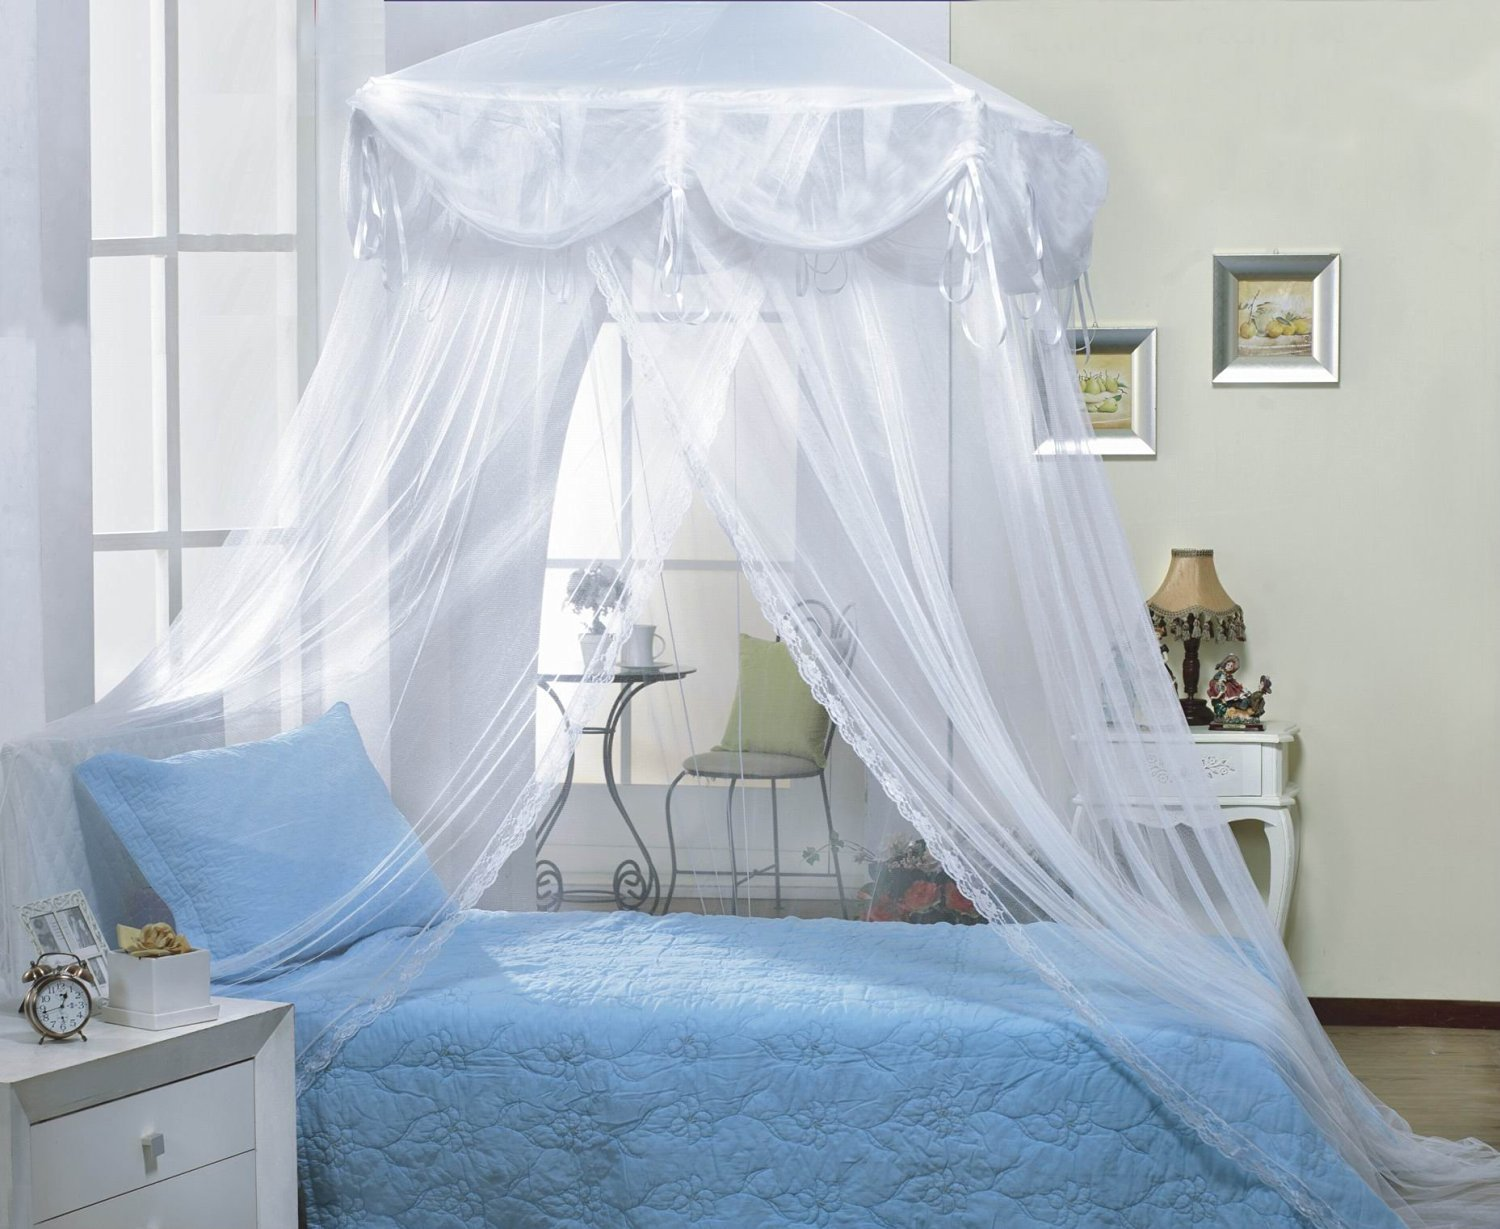 Amazon.com White four Corner Square Princess Bed Canopy By Sid Kitchen u0026 Dining & Amazon.com: White four Corner Square Princess Bed Canopy By Sid ...